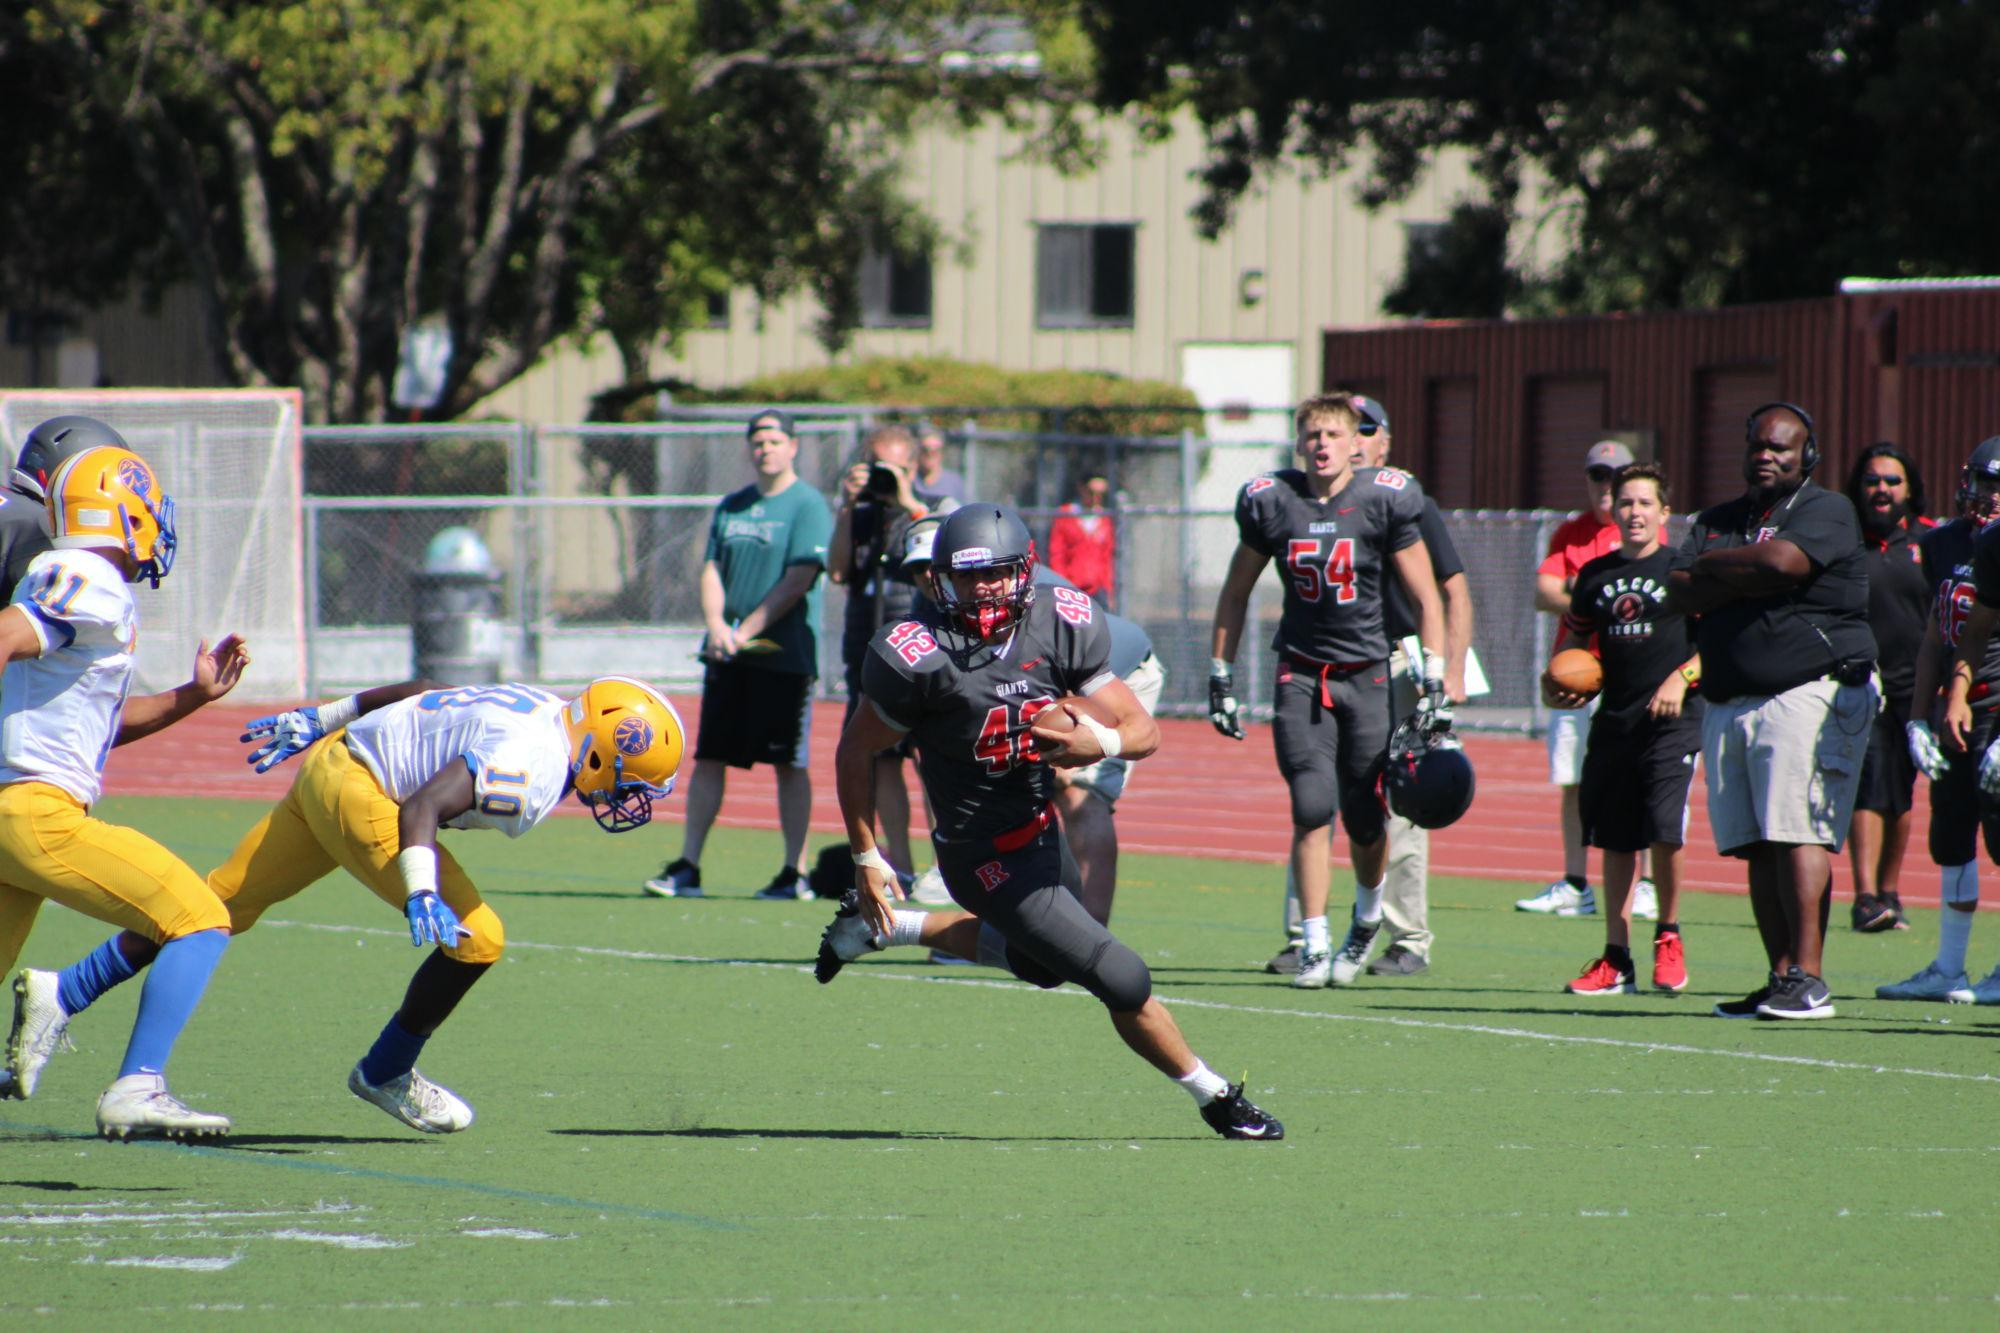 Redwood opens season with win over Mt. Eden behind Calzaretta's big day